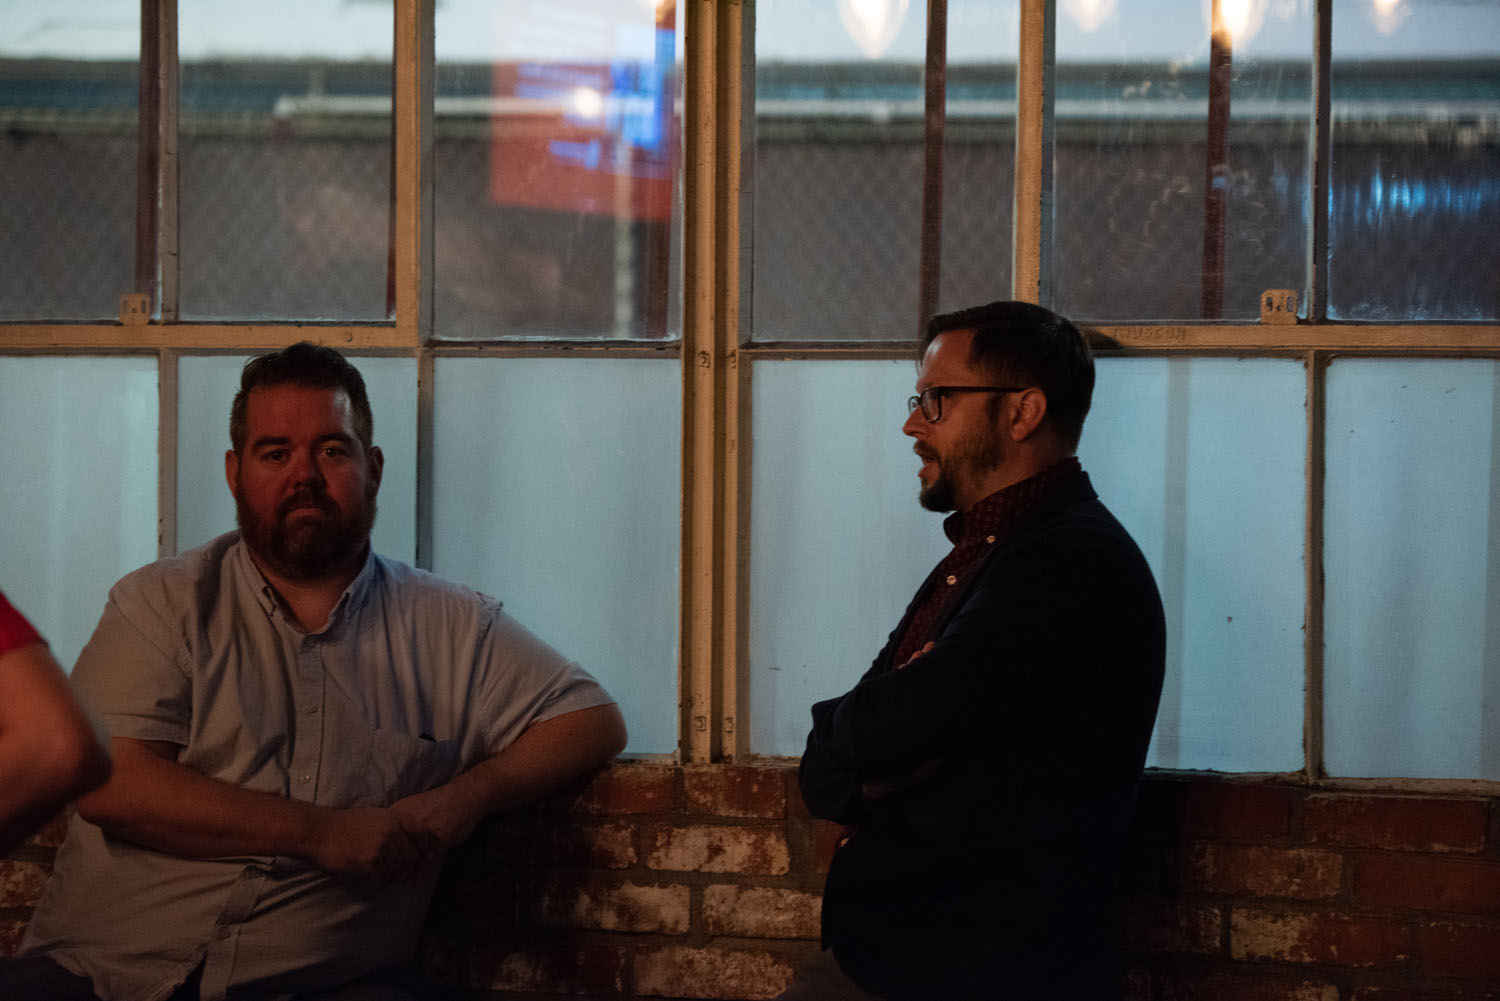 WCT Artistic Director Nick Armstrong and Westside Sketch Co. Director Cole Stratton